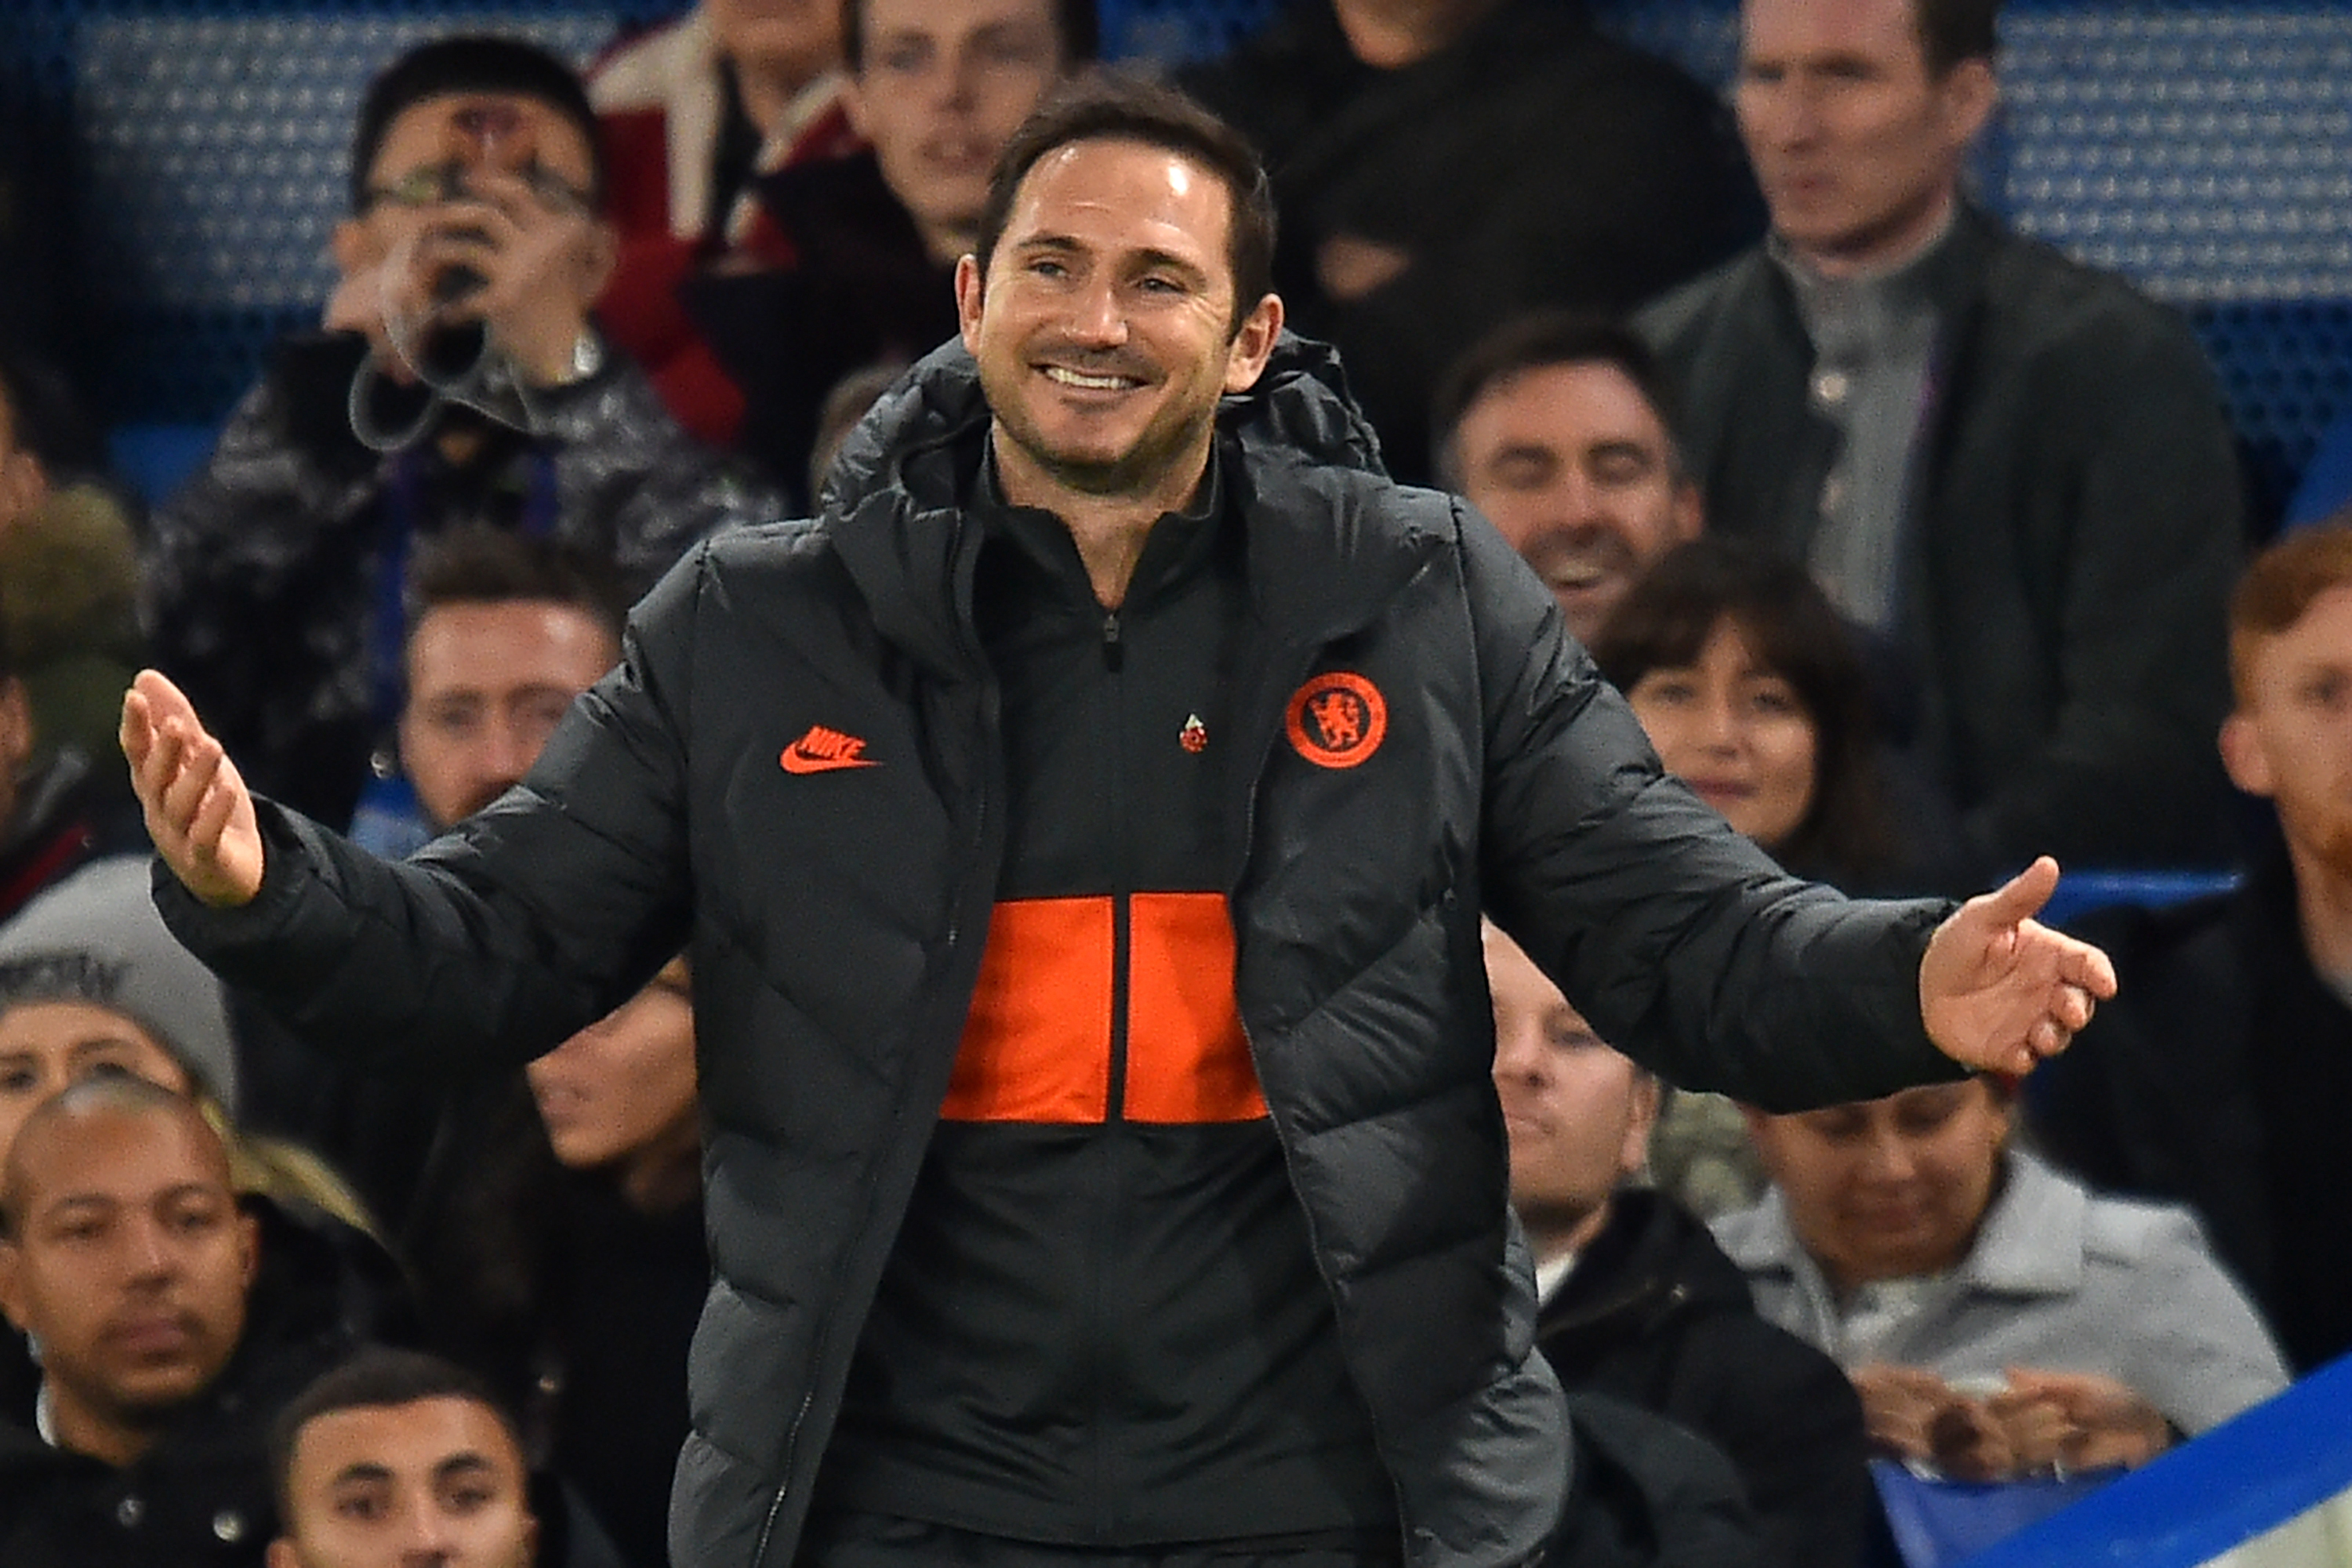 Chelsea coach Frank Lampard was left searching for an explanation after a frantic contest at Stamford Bridge.